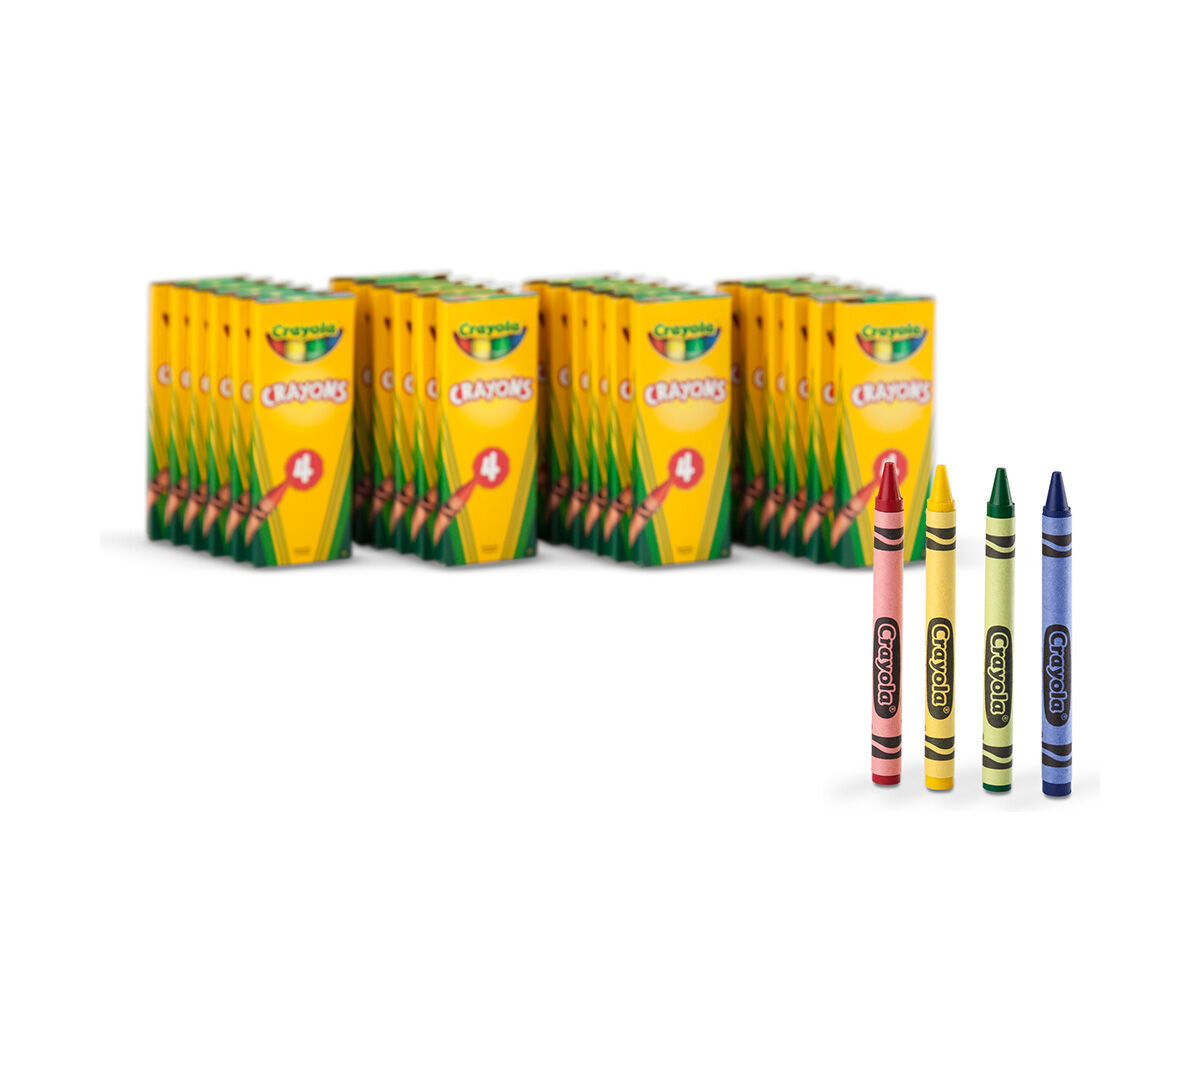 4 ct crayons 24 boxes per case pack crayola